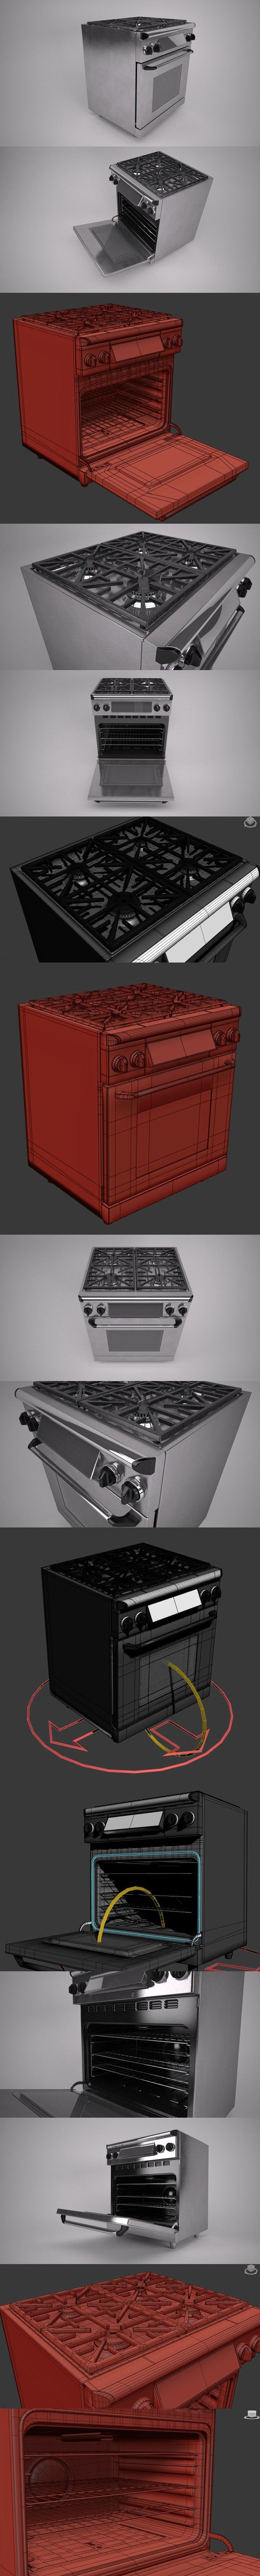 30 inch gas range cooker. 3D Furniture